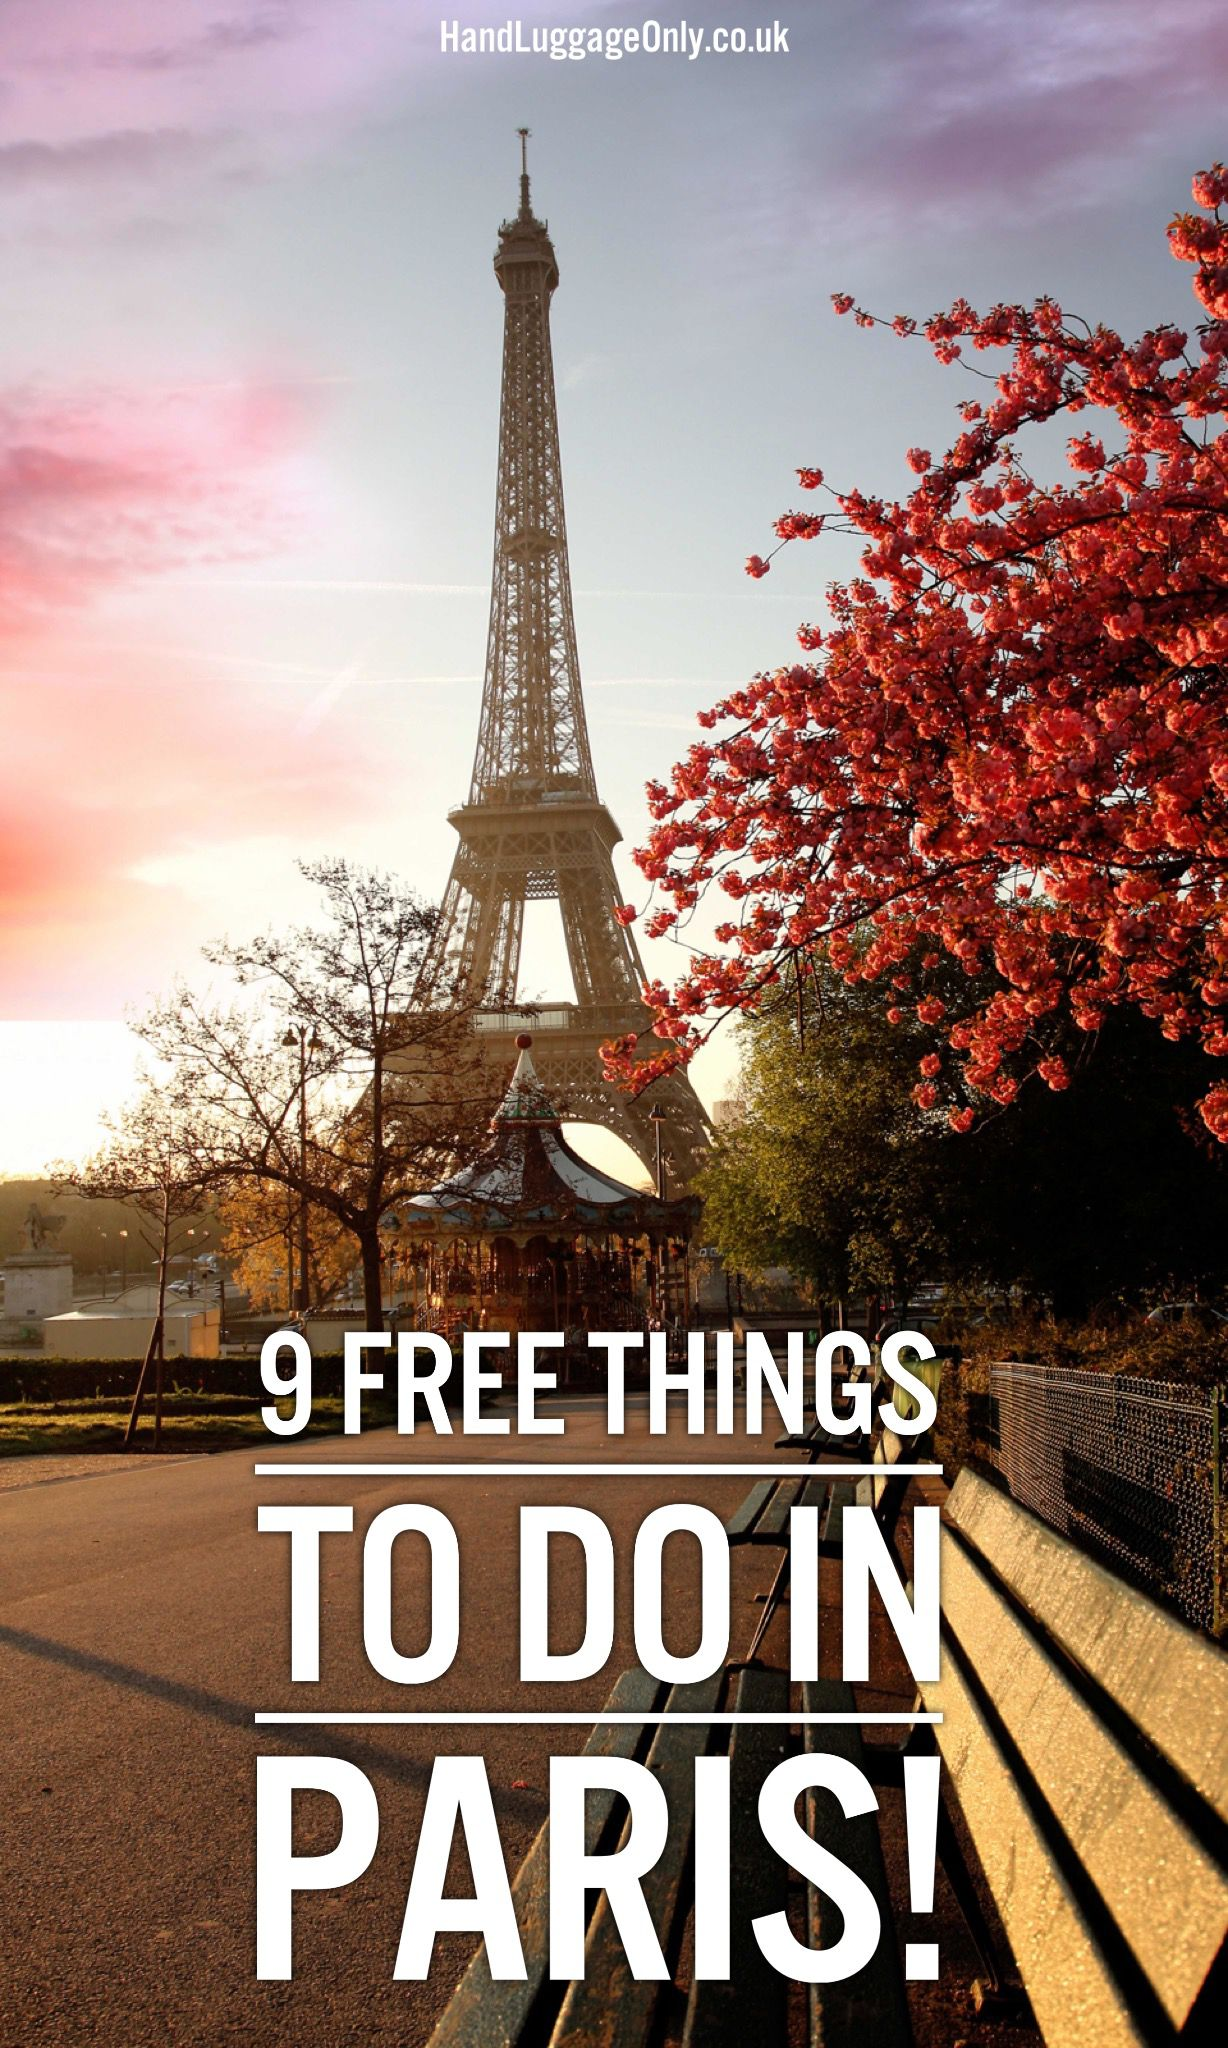 9 Free Things To Do In Paris!